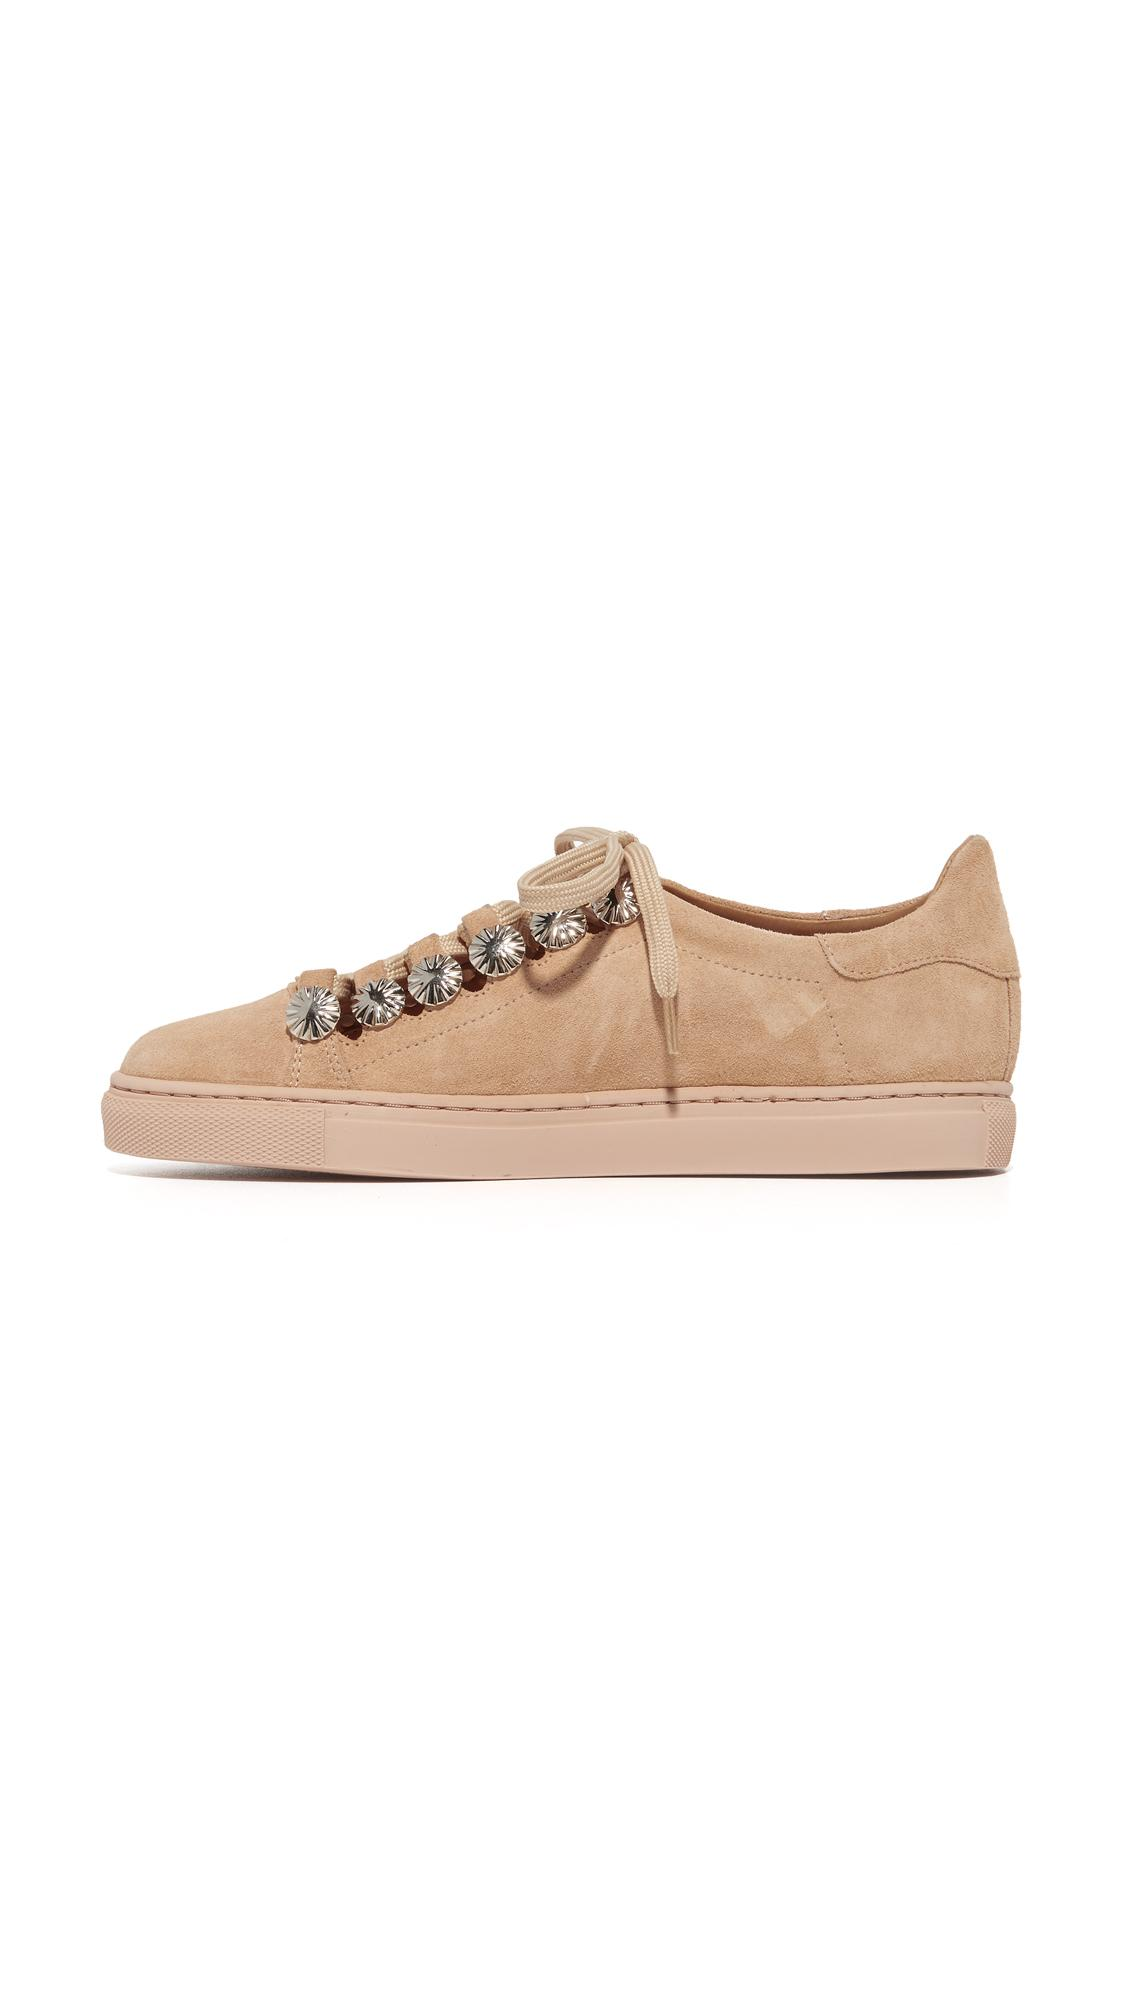 Toga Suede Embellished Sneakers